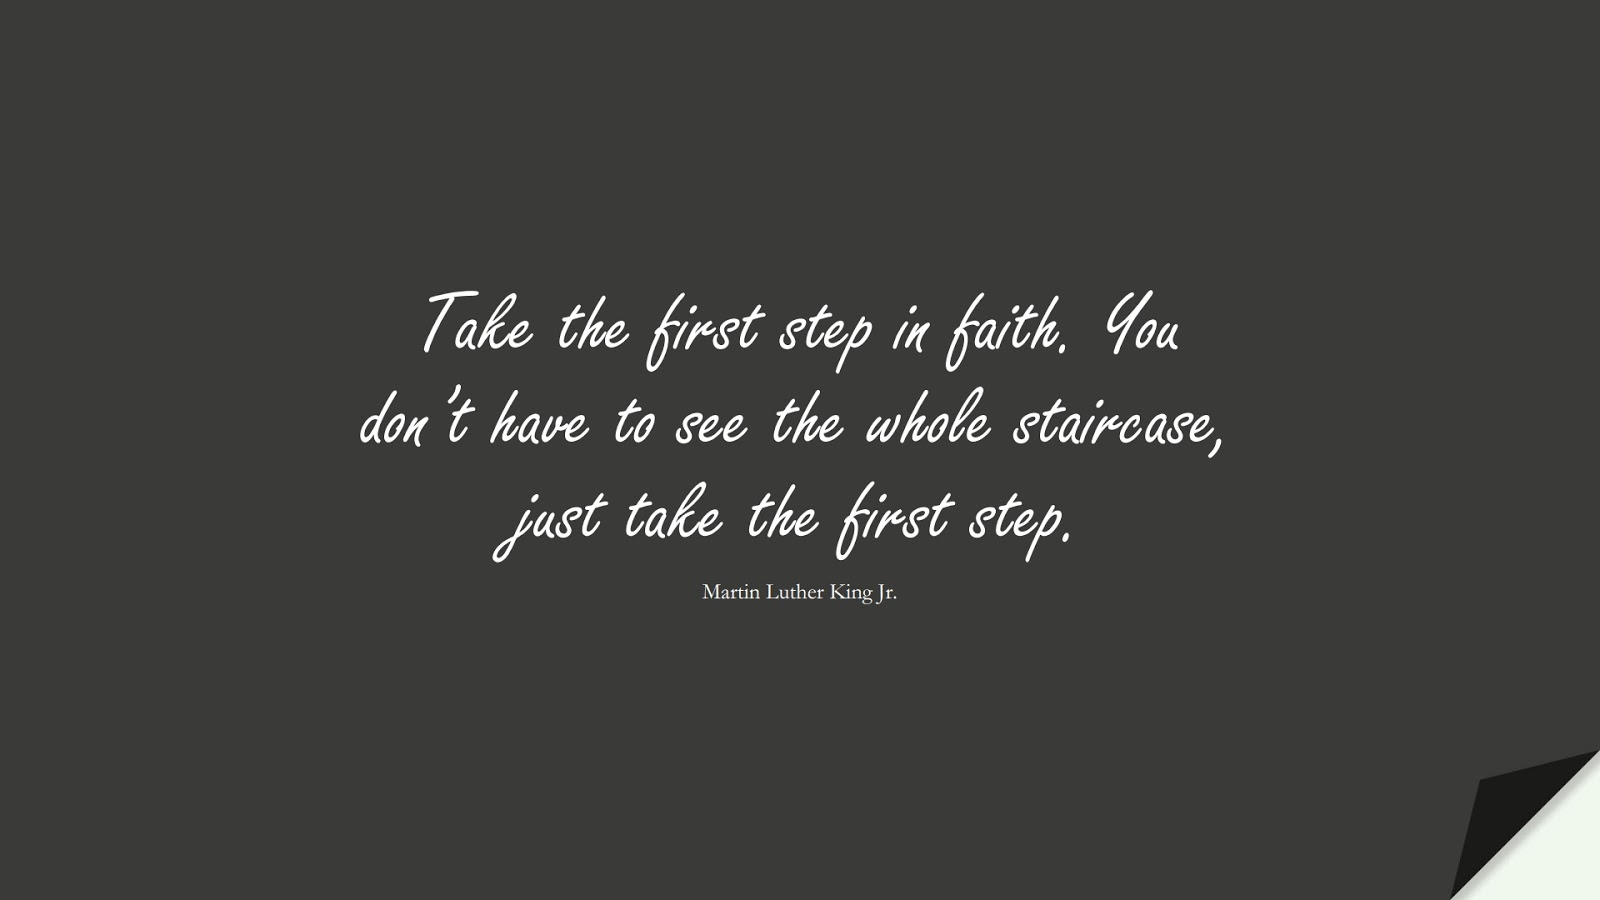 Take the first step in faith. You don't have to see the whole staircase, just take the first step. (Martin Luther King Jr.);  #MartinLutherKingJrQuotes